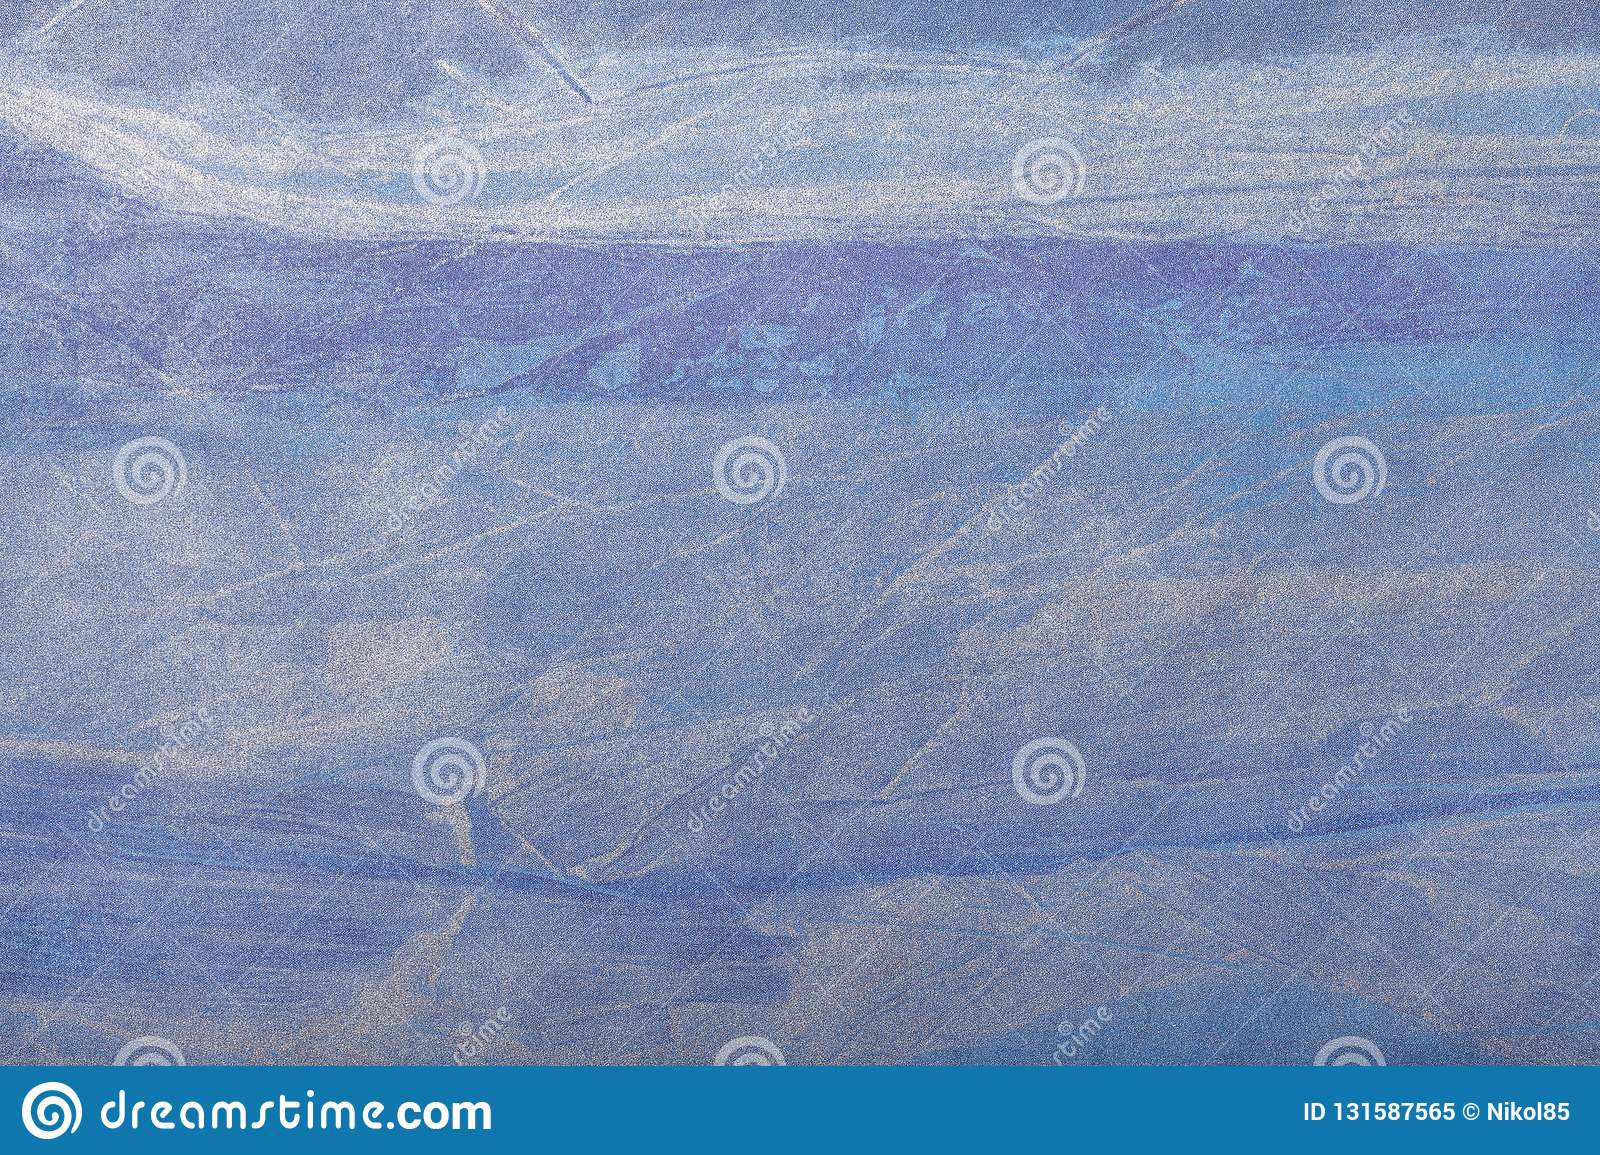 Abstract art background navy blue and silver color. Multicolor painting on canvas. Fragment of artwork. Texture backdrop.